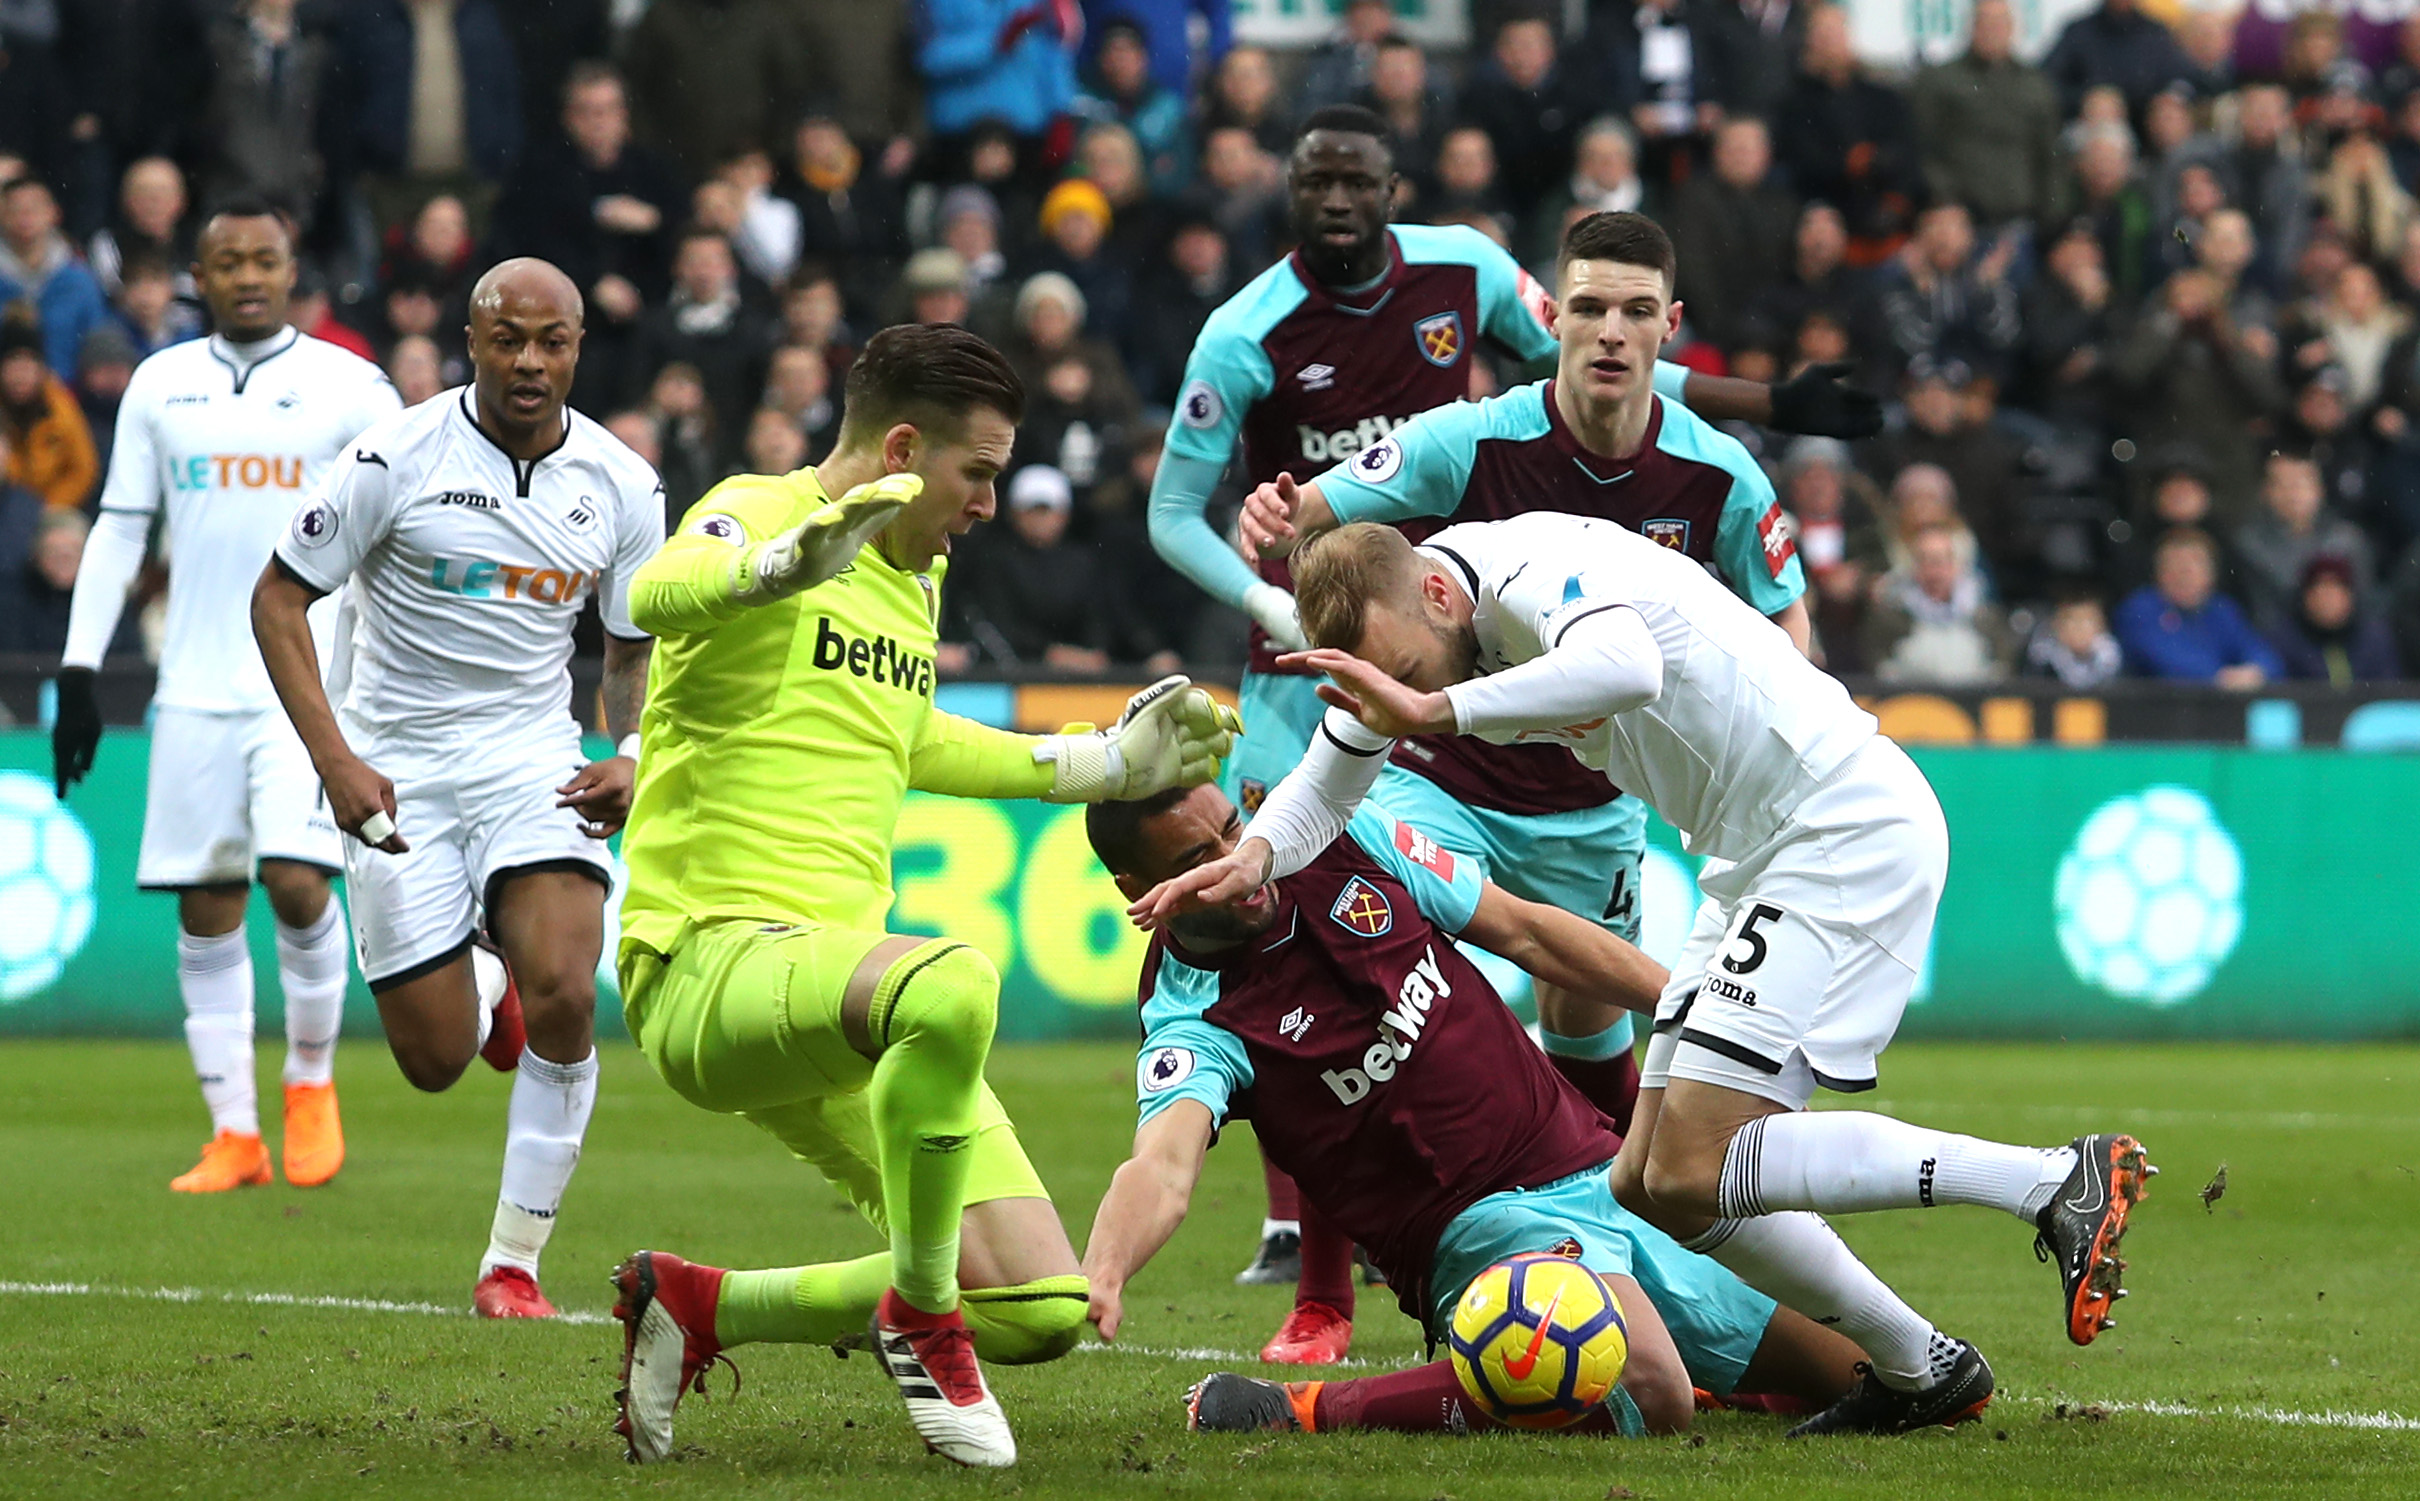 West Ham vs Burnley 10 March 2018: EPL Soccer Preview and Predictions